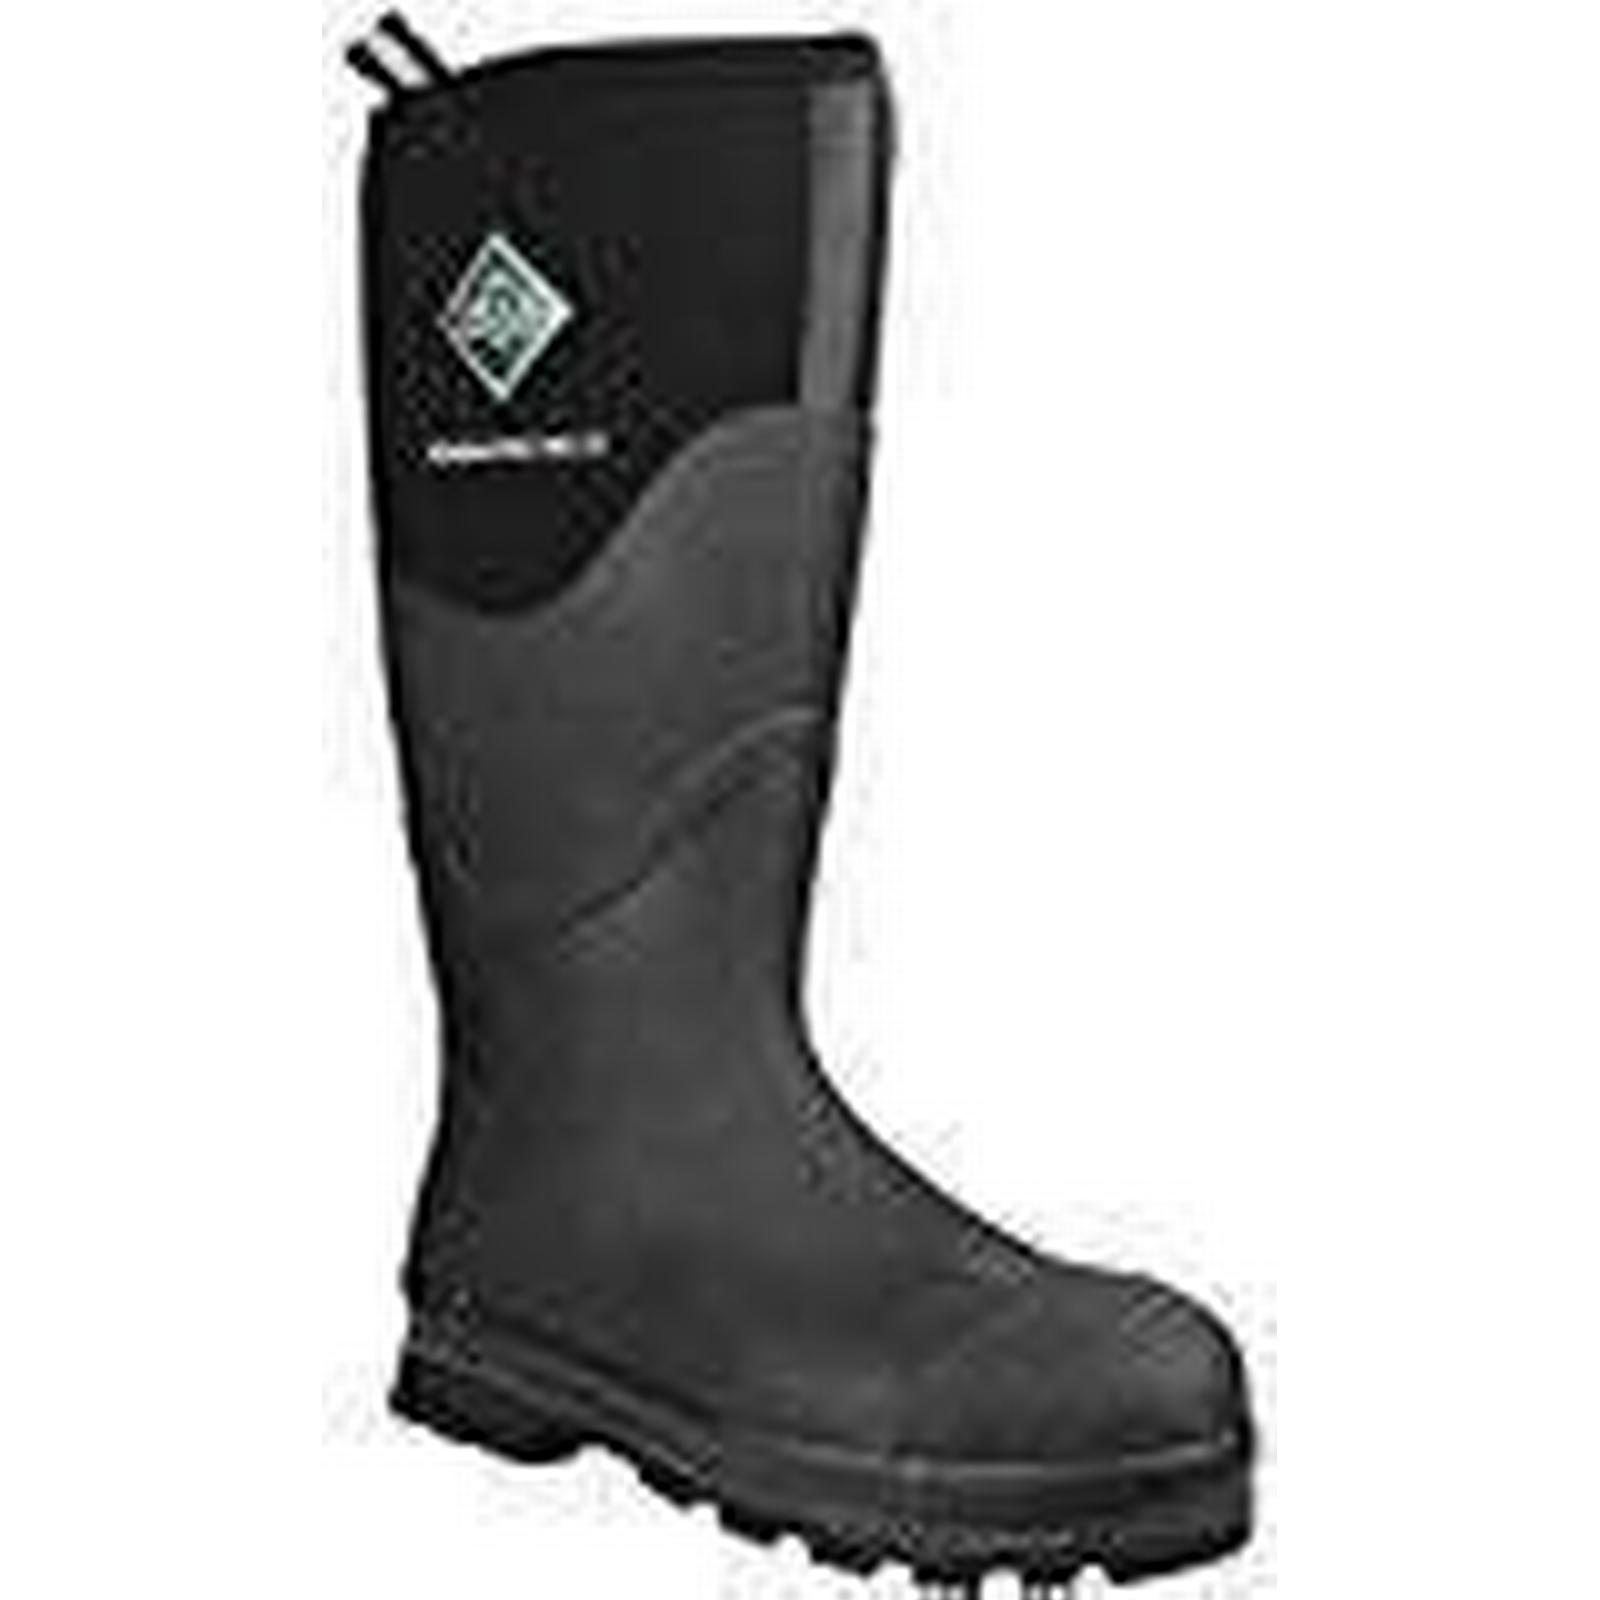 Muck Boots Men's Workmaster Pro Hi S/T-Black Wellington Boots, Black EU (Black), 12 UK 47 EU Black a9d9d0